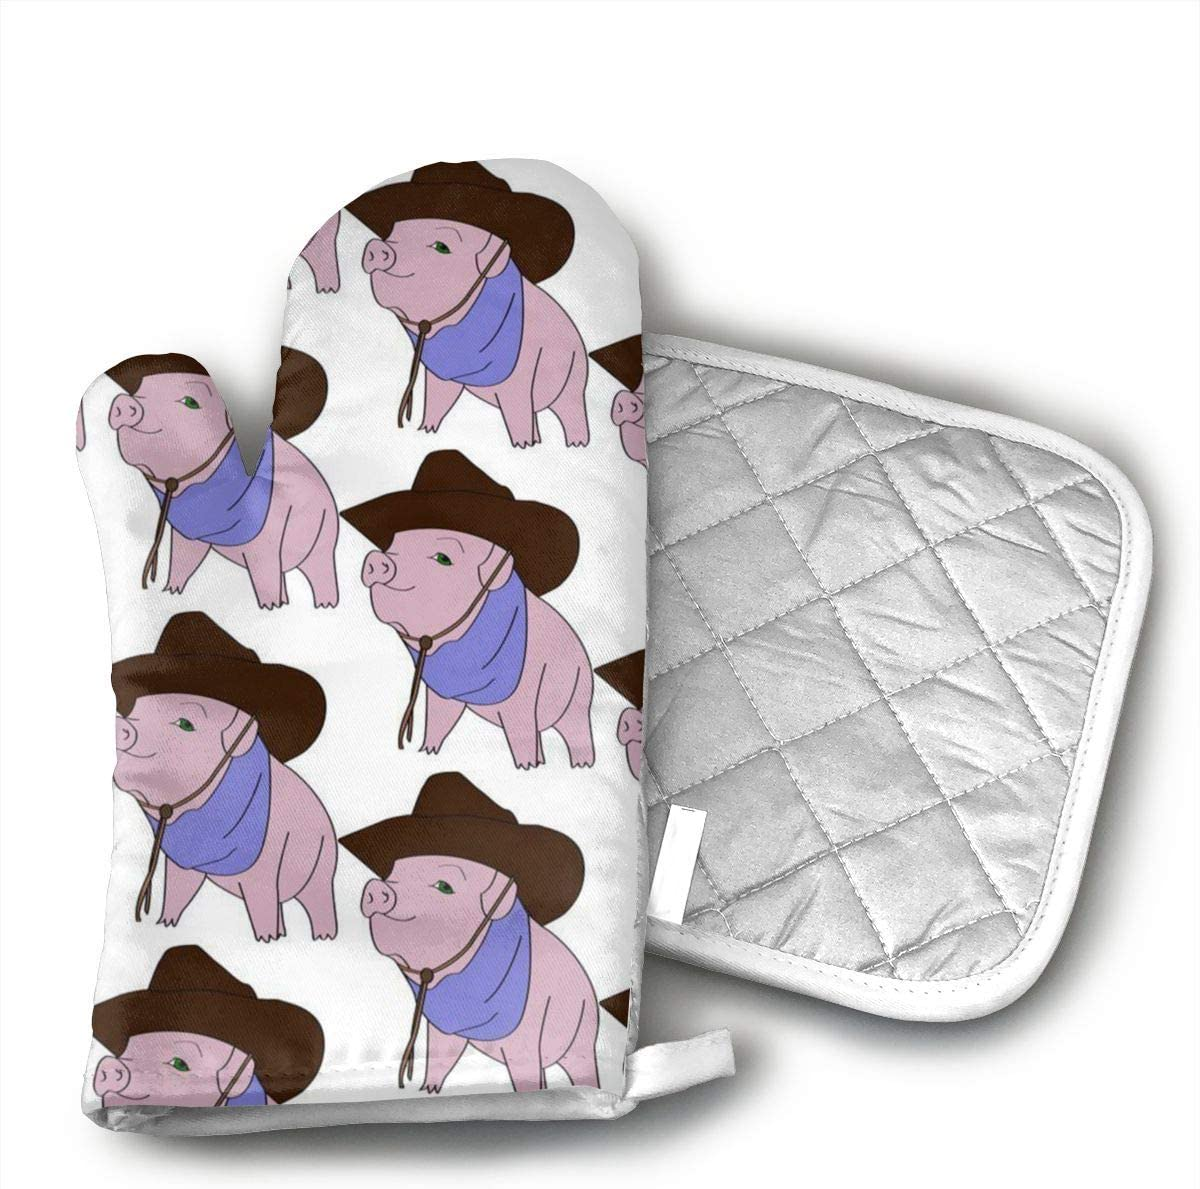 Teuwia Cowboy Pig Oven Mitts and Pot Holders Baking Oven Gloves Hot Pads Set Heat Resistant for Finger Hand Wrist Protection